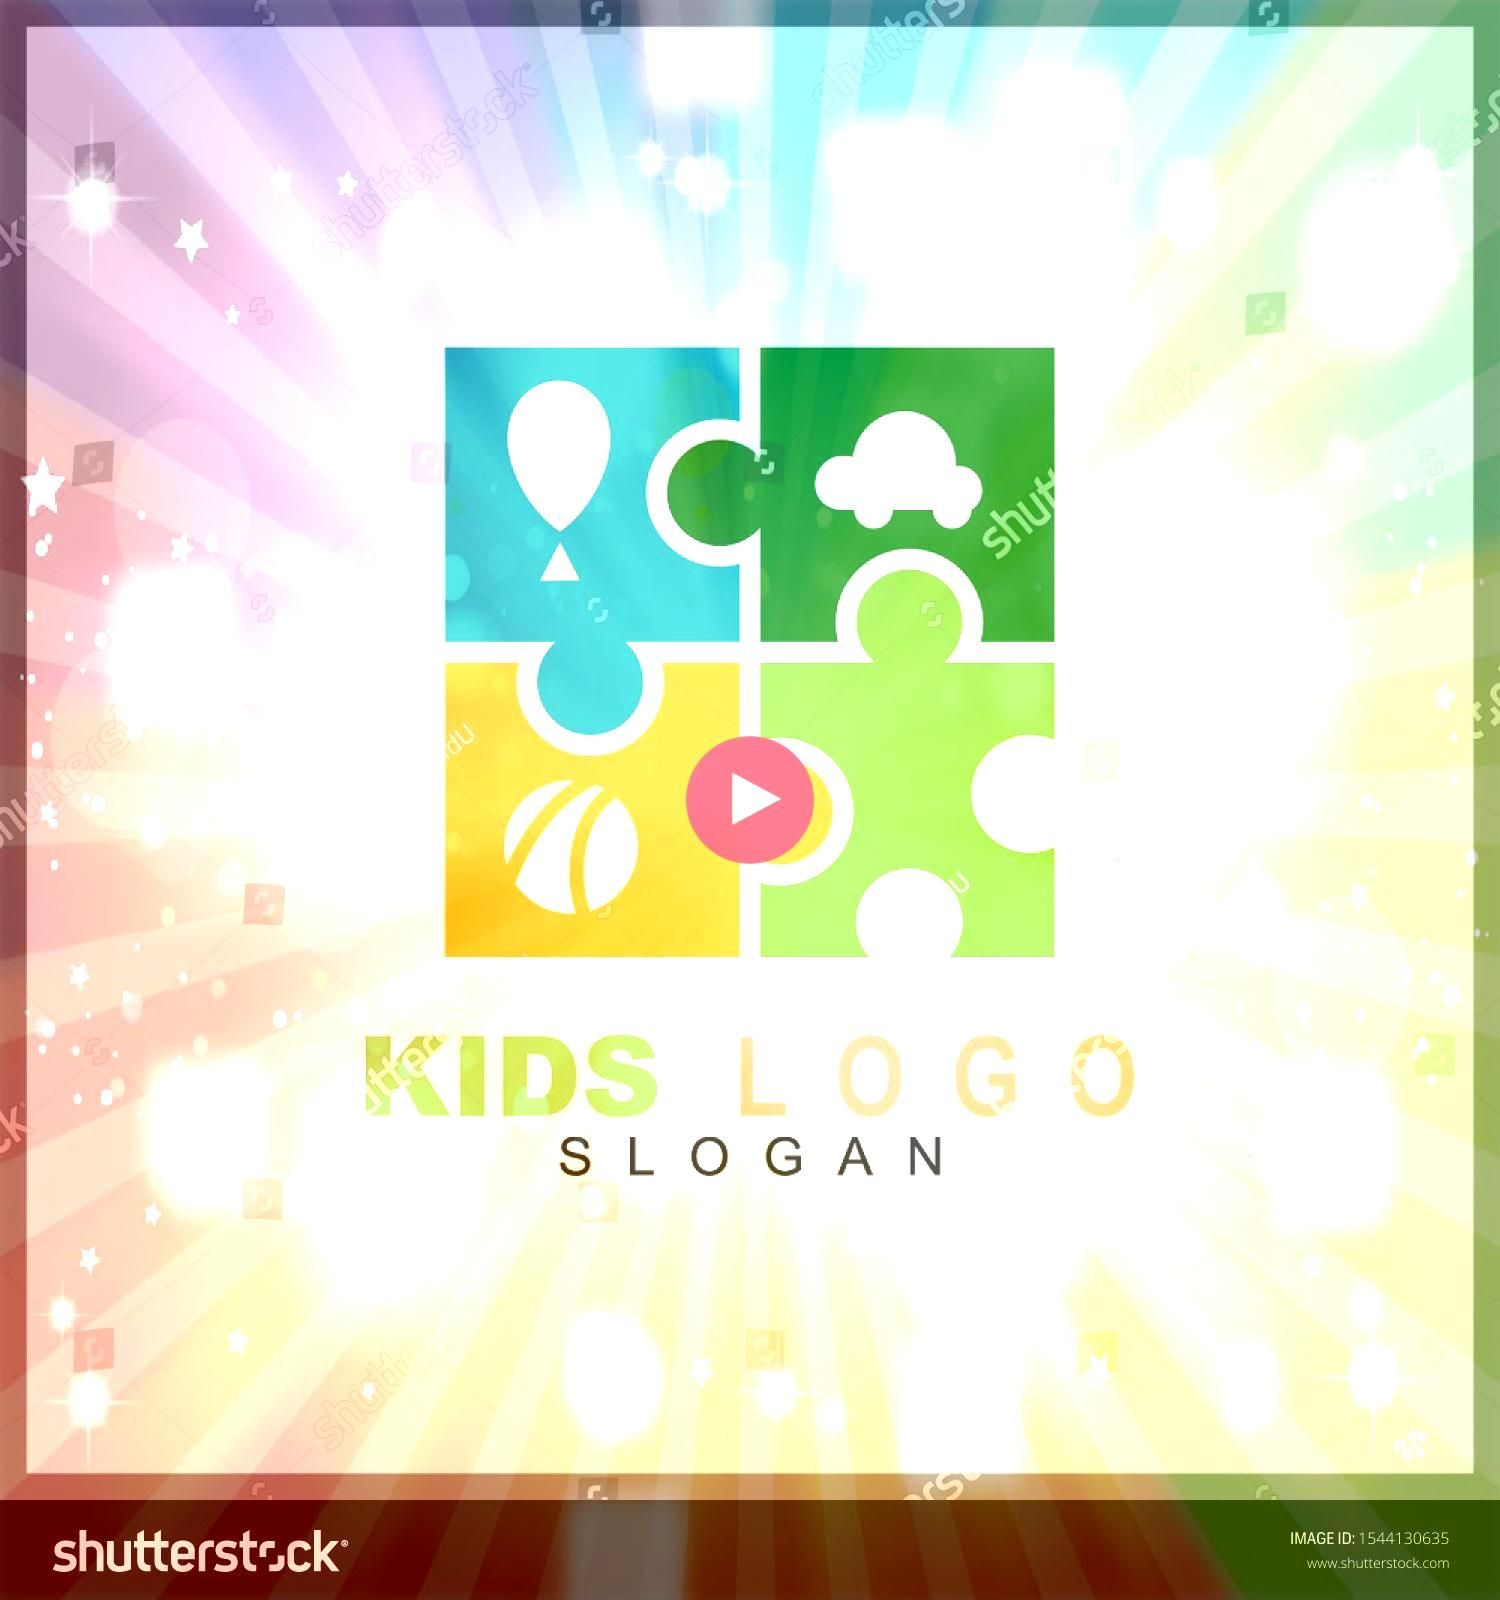 play colorful logo vector Children logo designs happy child design concept kid education logo logo element template Kids play colorful logo vector Children logo designs h...